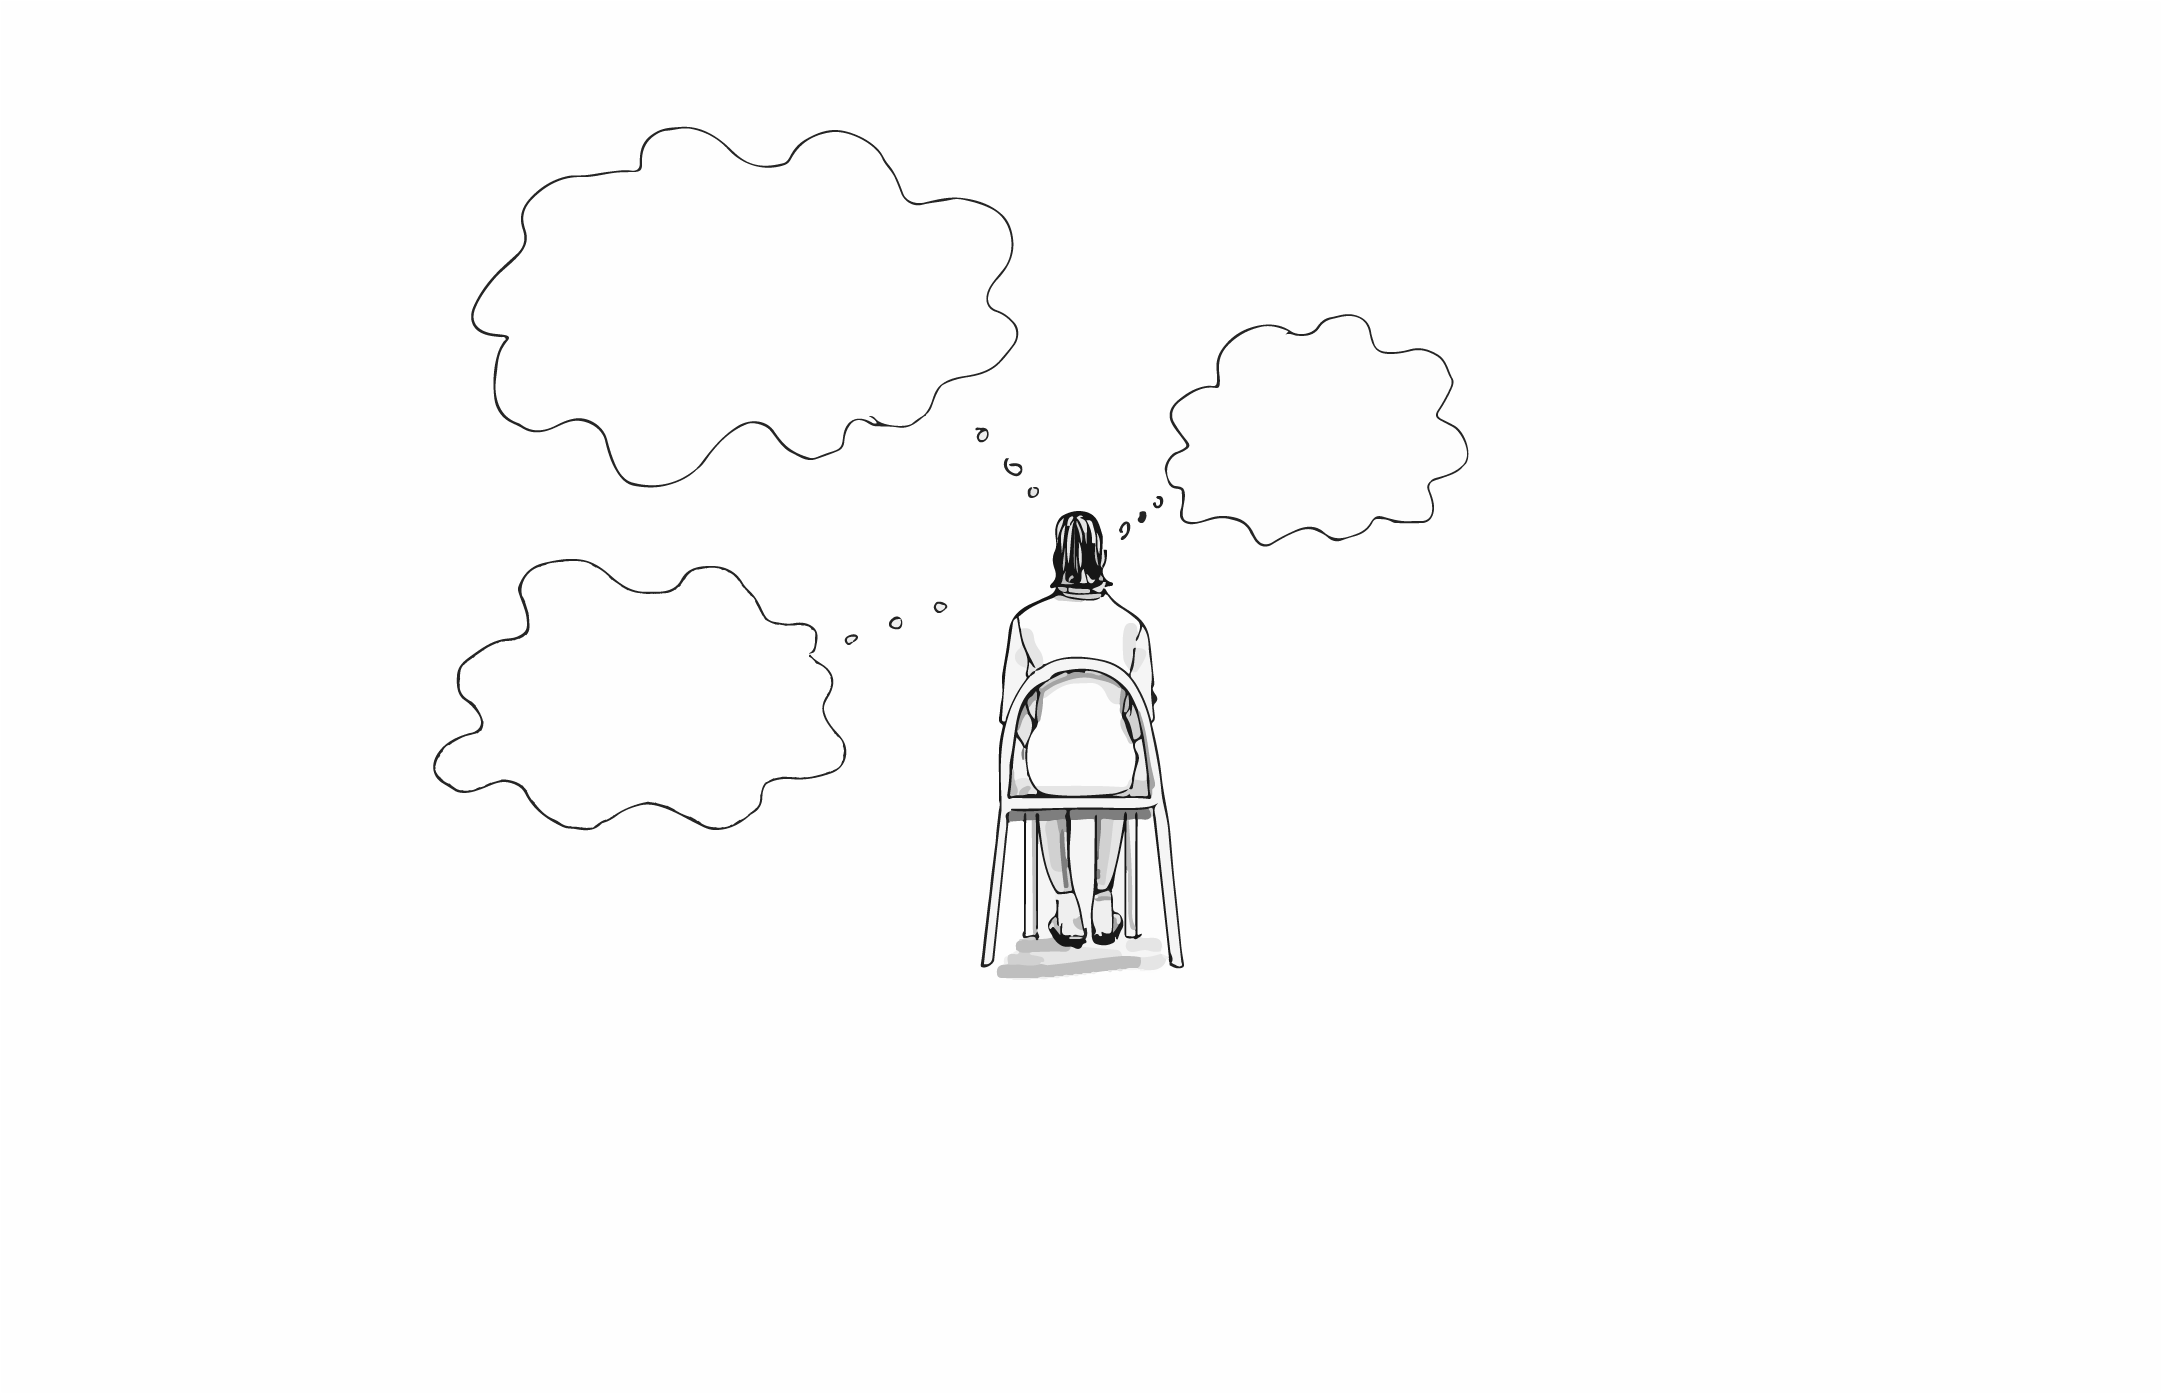 Illustration of a person sitting in a chair with their back to us and quote bubbles hovering over them.